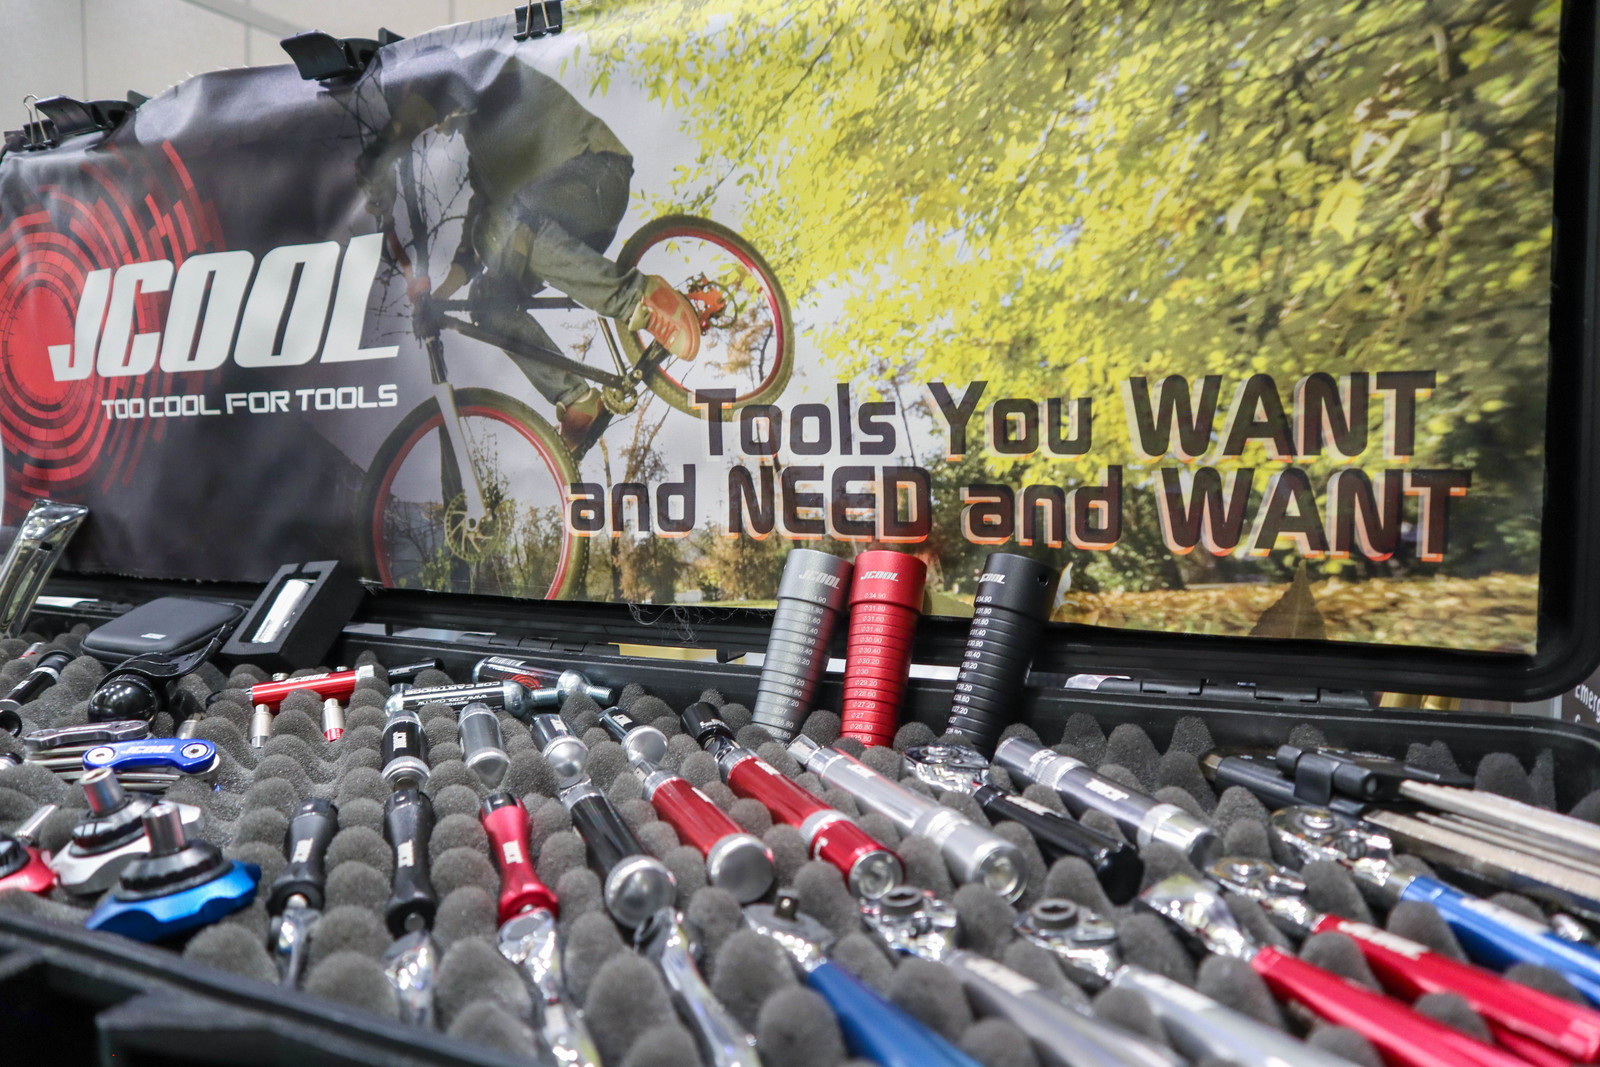 Tools You Want and Need and Want - Crazy Bike Tech from Taichung Bike Week - Mountain Biking Pictures - Vital MTB